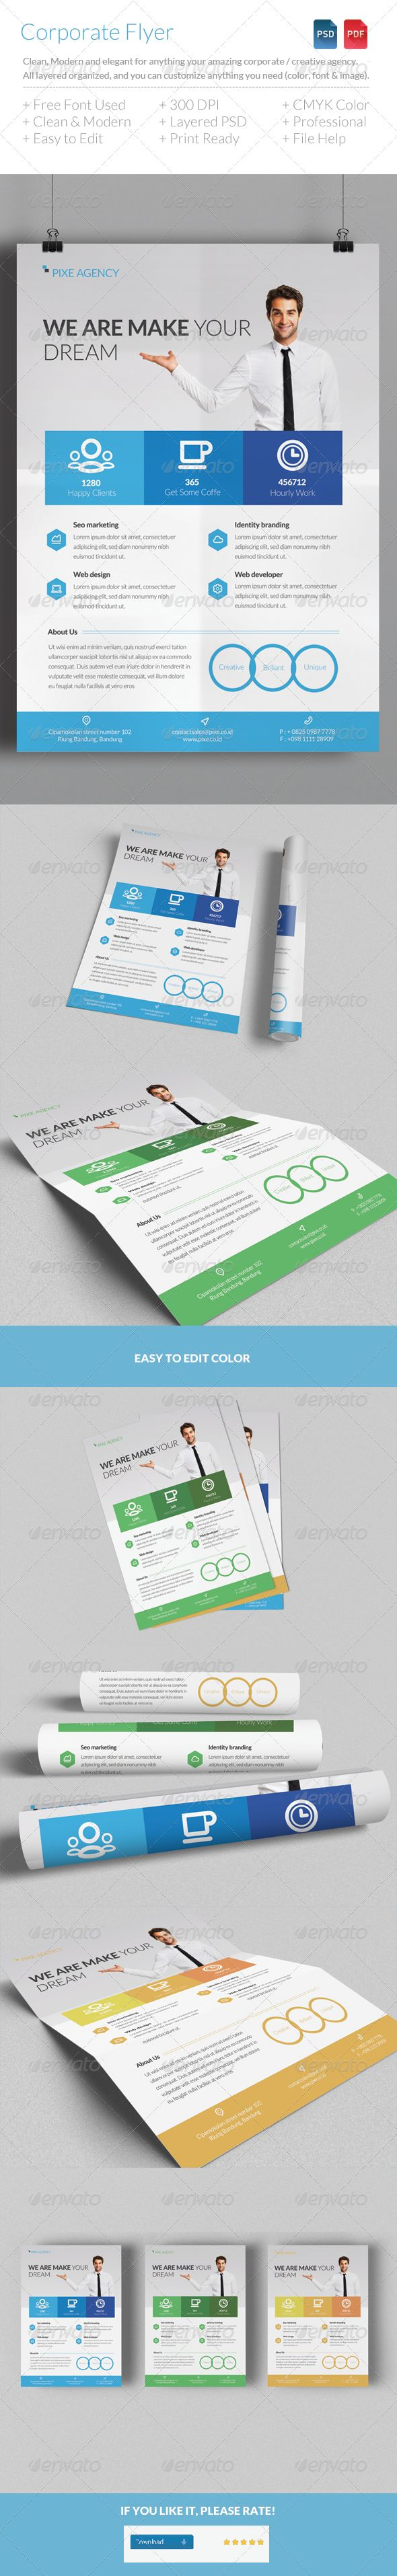 Clean & Modern Corporate Flyer Template - Corporate Flyers